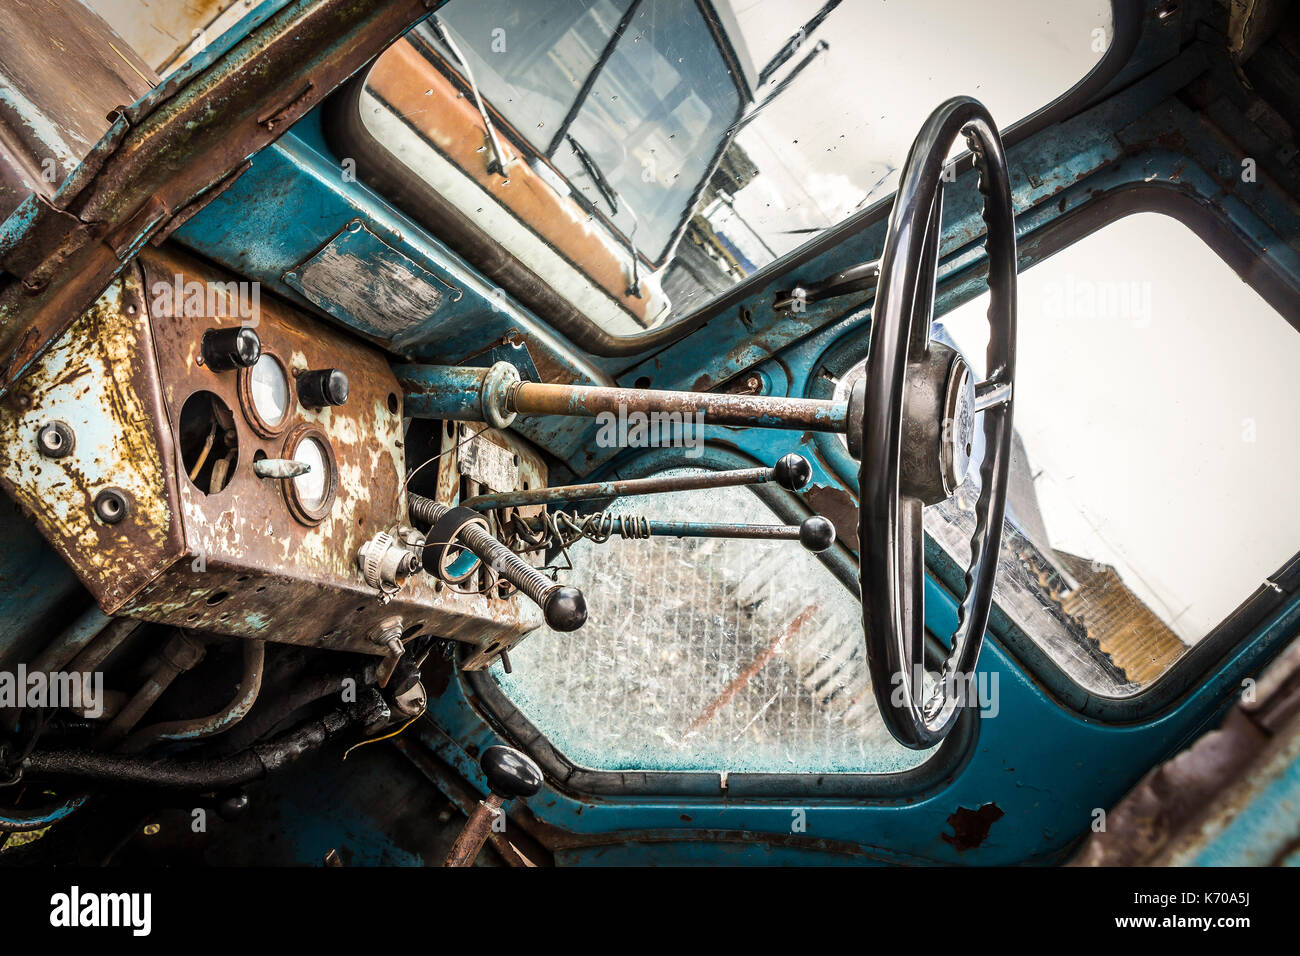 Broken Tractor Windshield : Old rusty truck interior stock photos